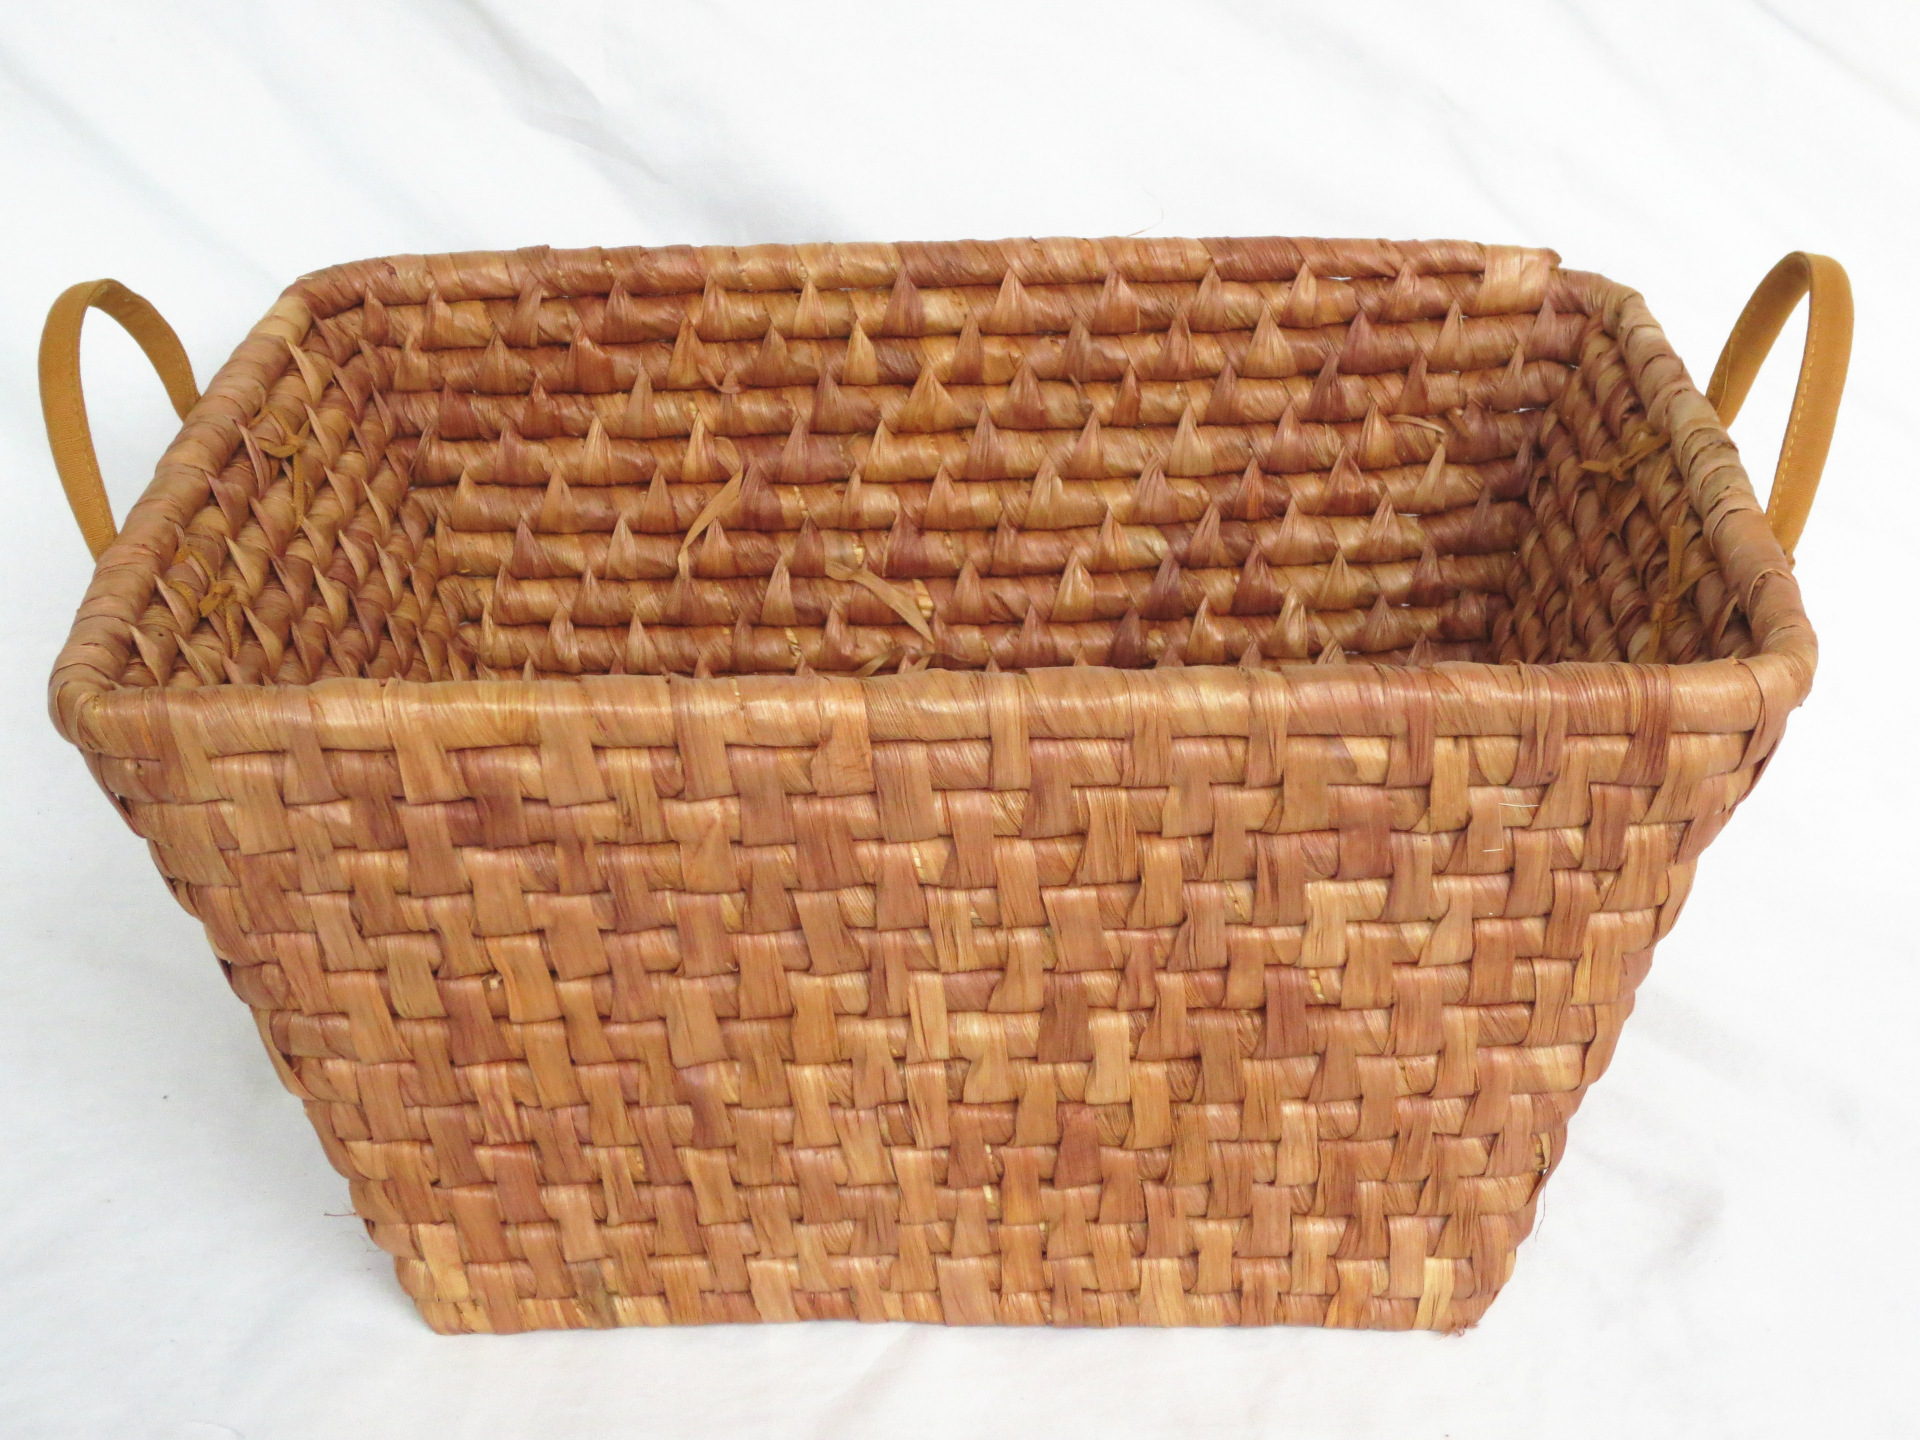 Aliexpress.com : Buy Q Guangzhou IEE Corn leaves woven straw storage basket  storage basket towel basket toy storage basket willow storage box from  Reliable ...